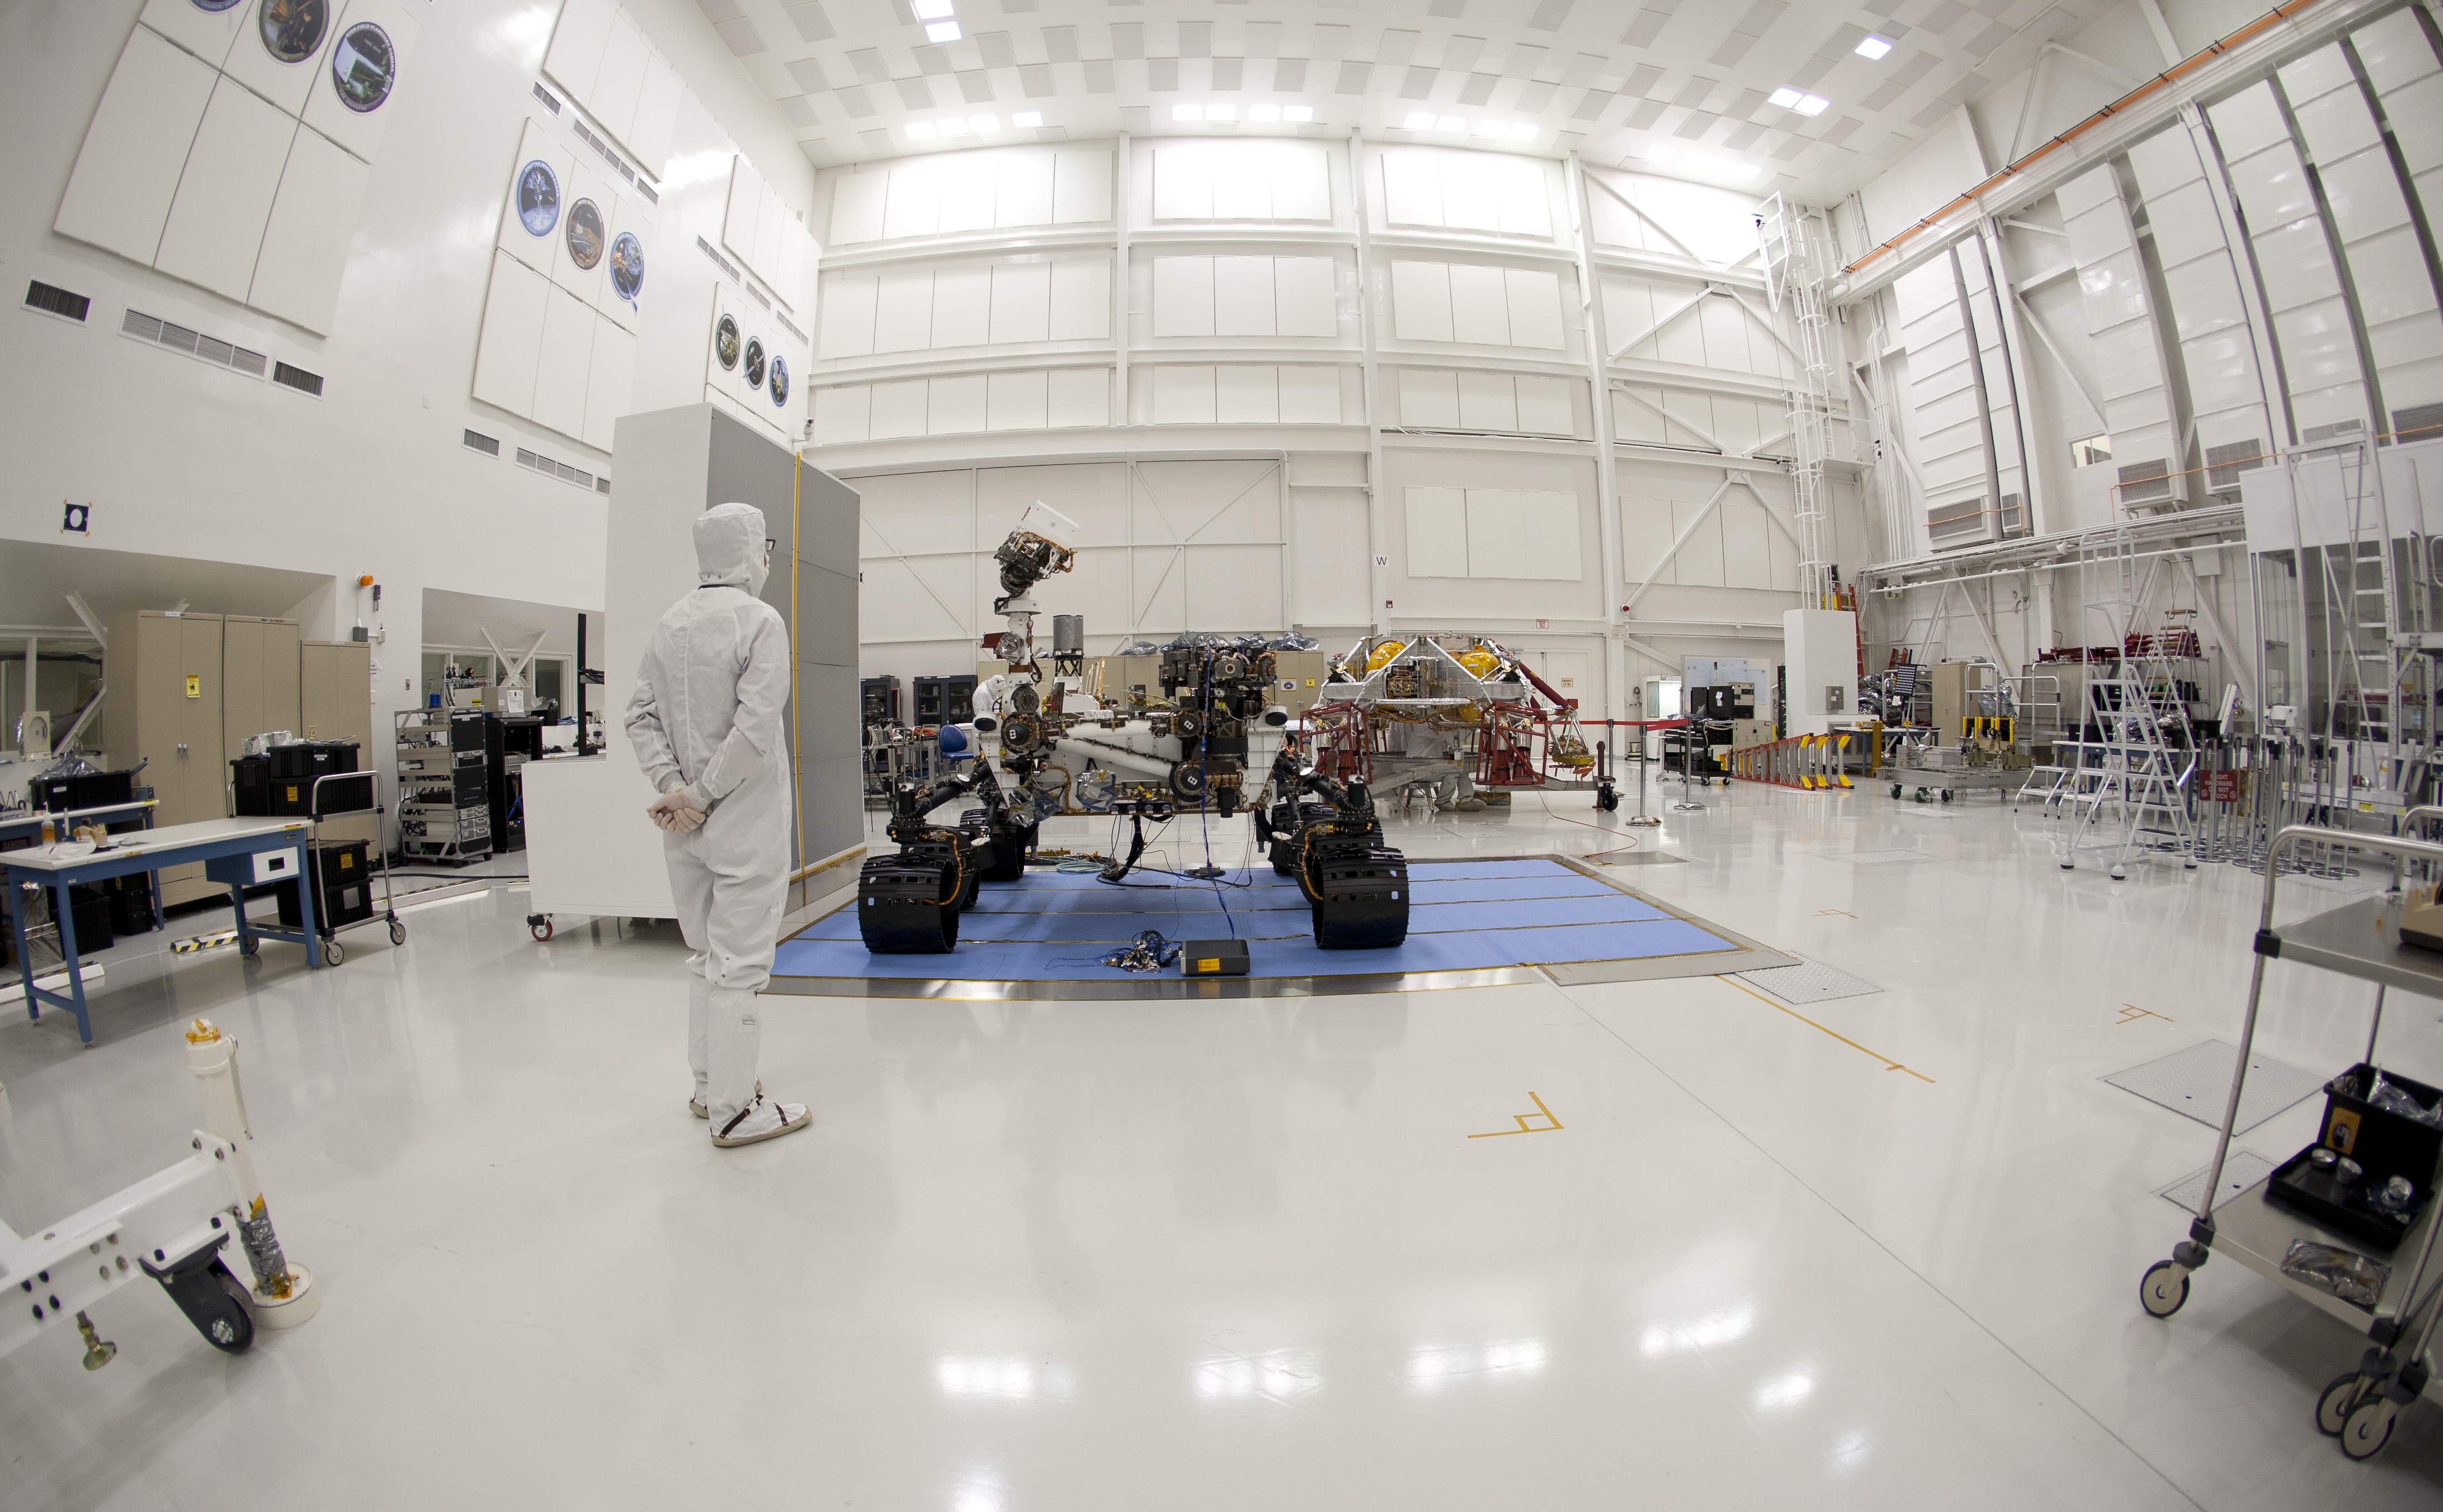 An engineer says goodbye to the Curiosity rover and its powered descent vehicle in the Jet Propulsion Laboratory's Spacecraft Assembly Facility shortly before the spacecraft was readied for shipment to Kennedy Space Center for launch.